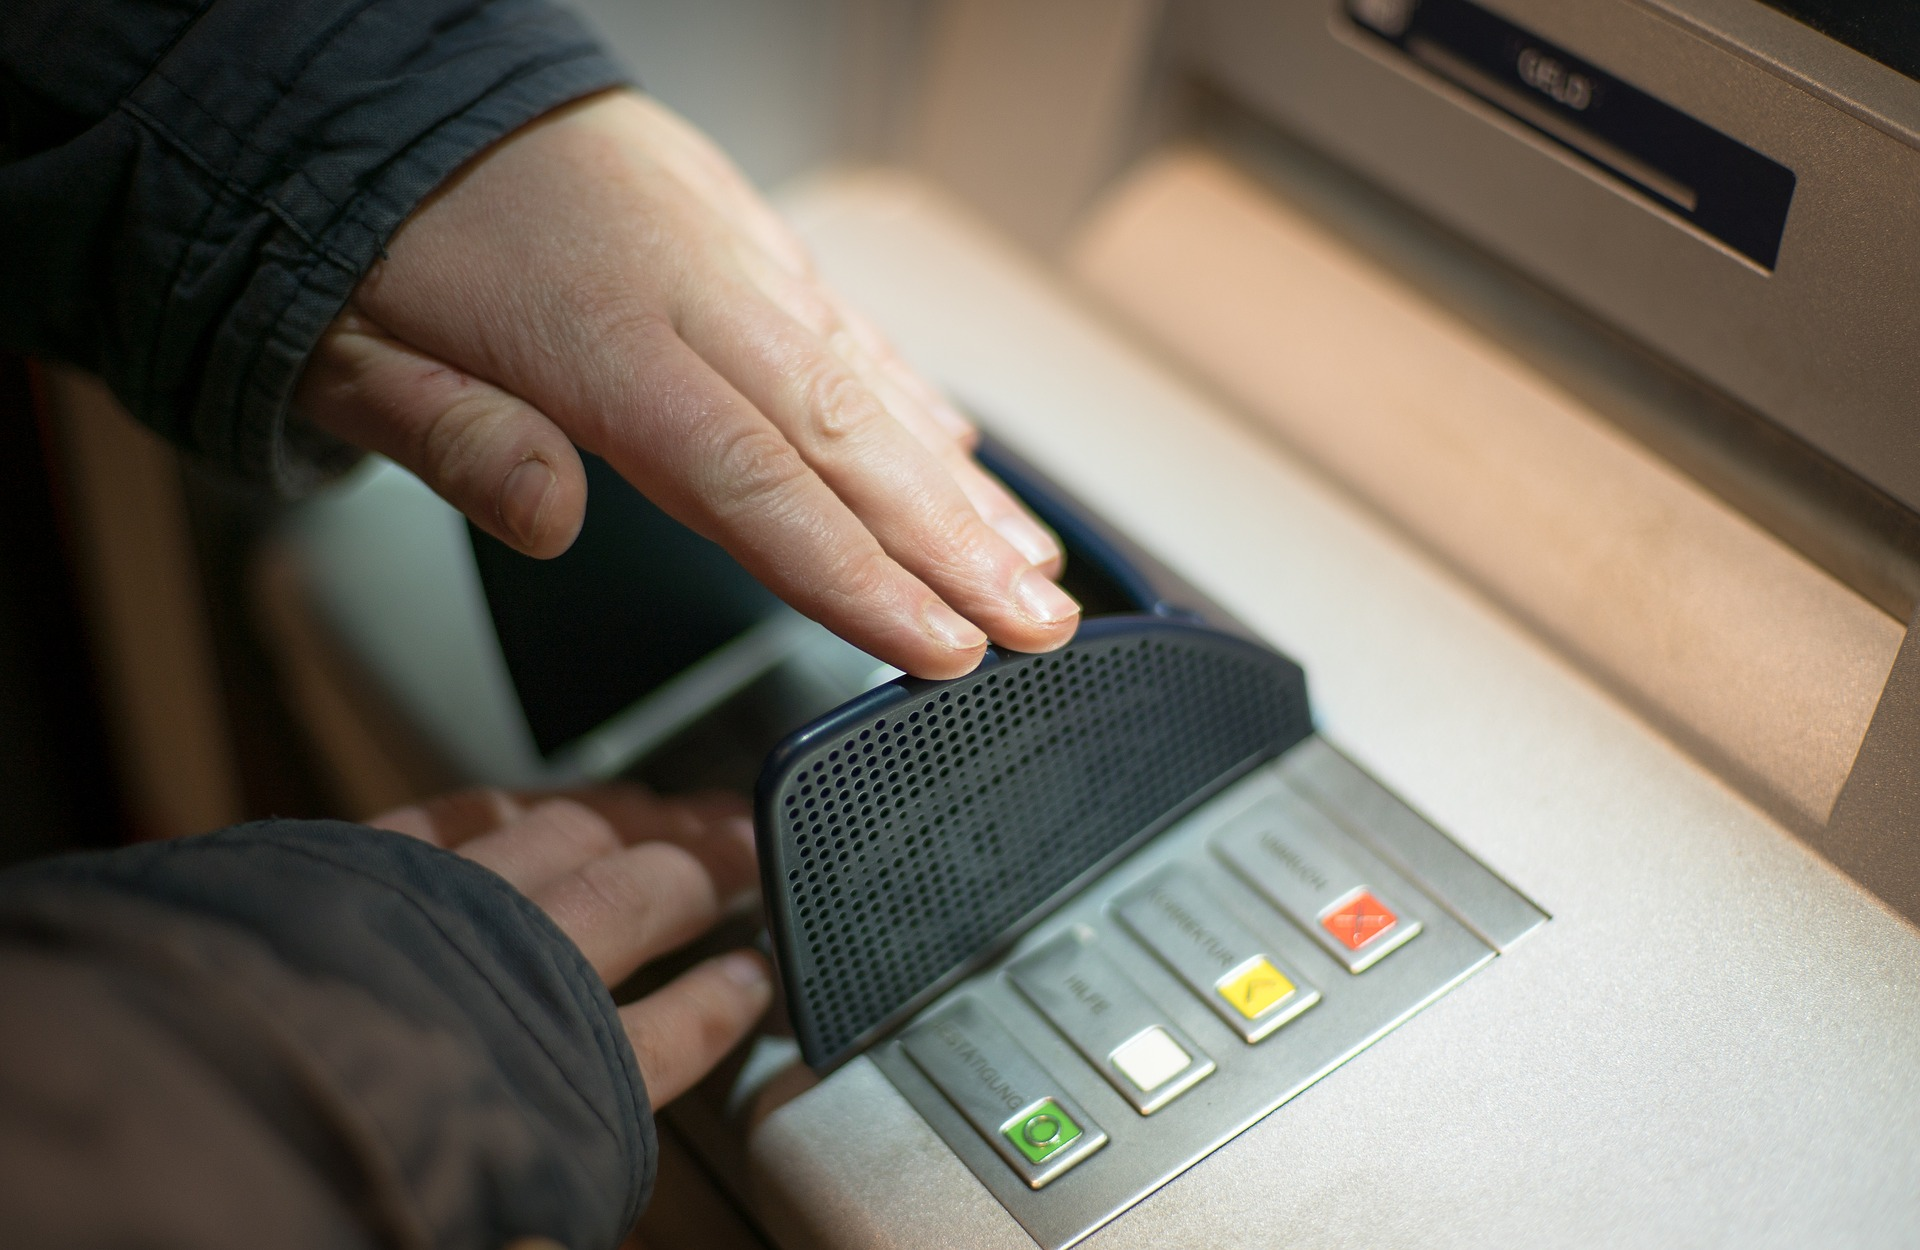 Male hands in black jacket using ATM